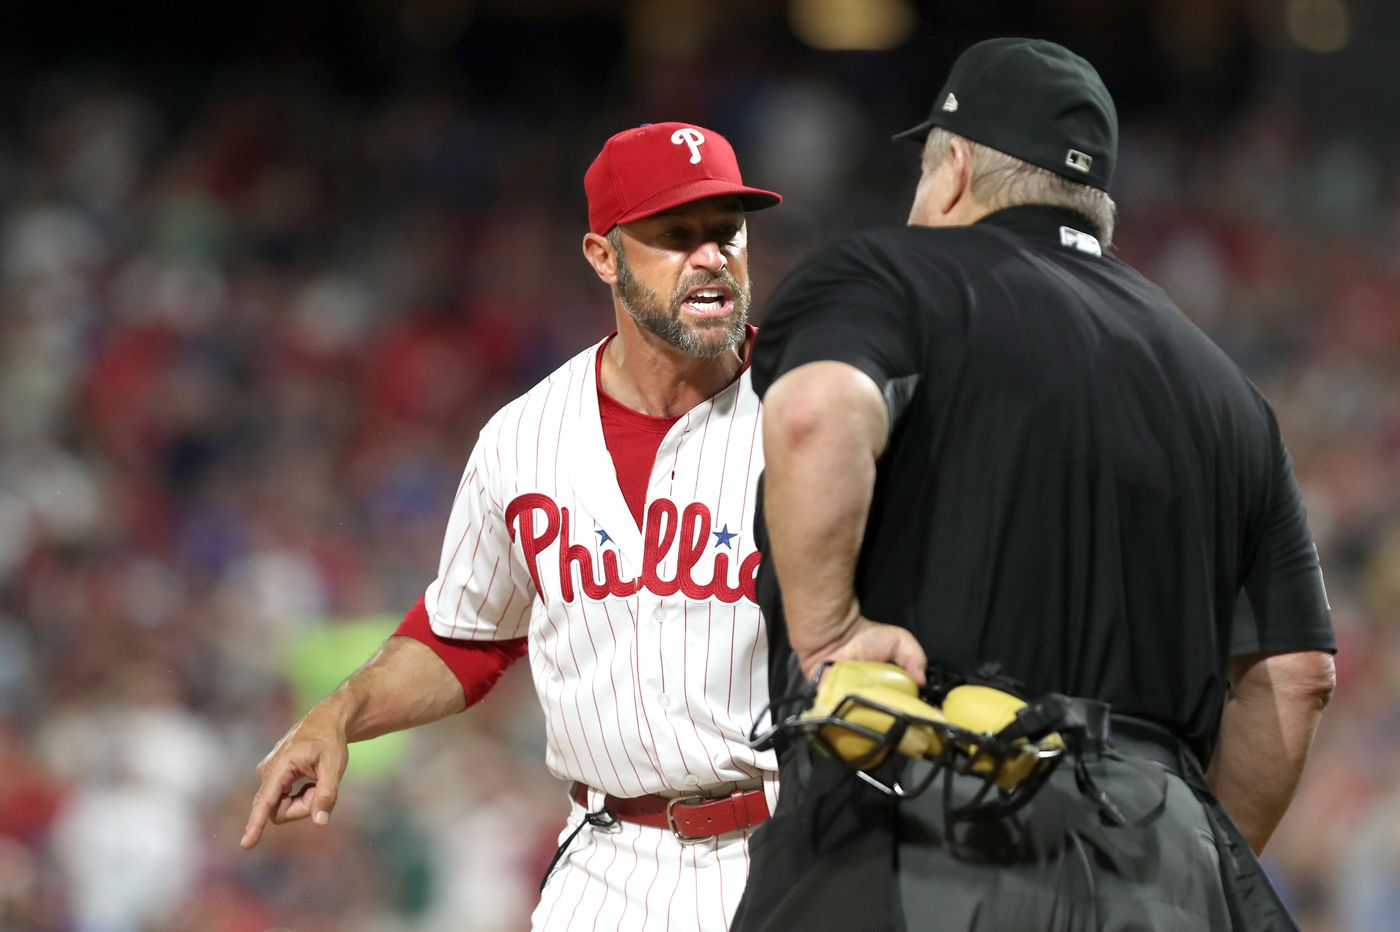 Phillies manager Gabe Kapler ejected for second time in four games